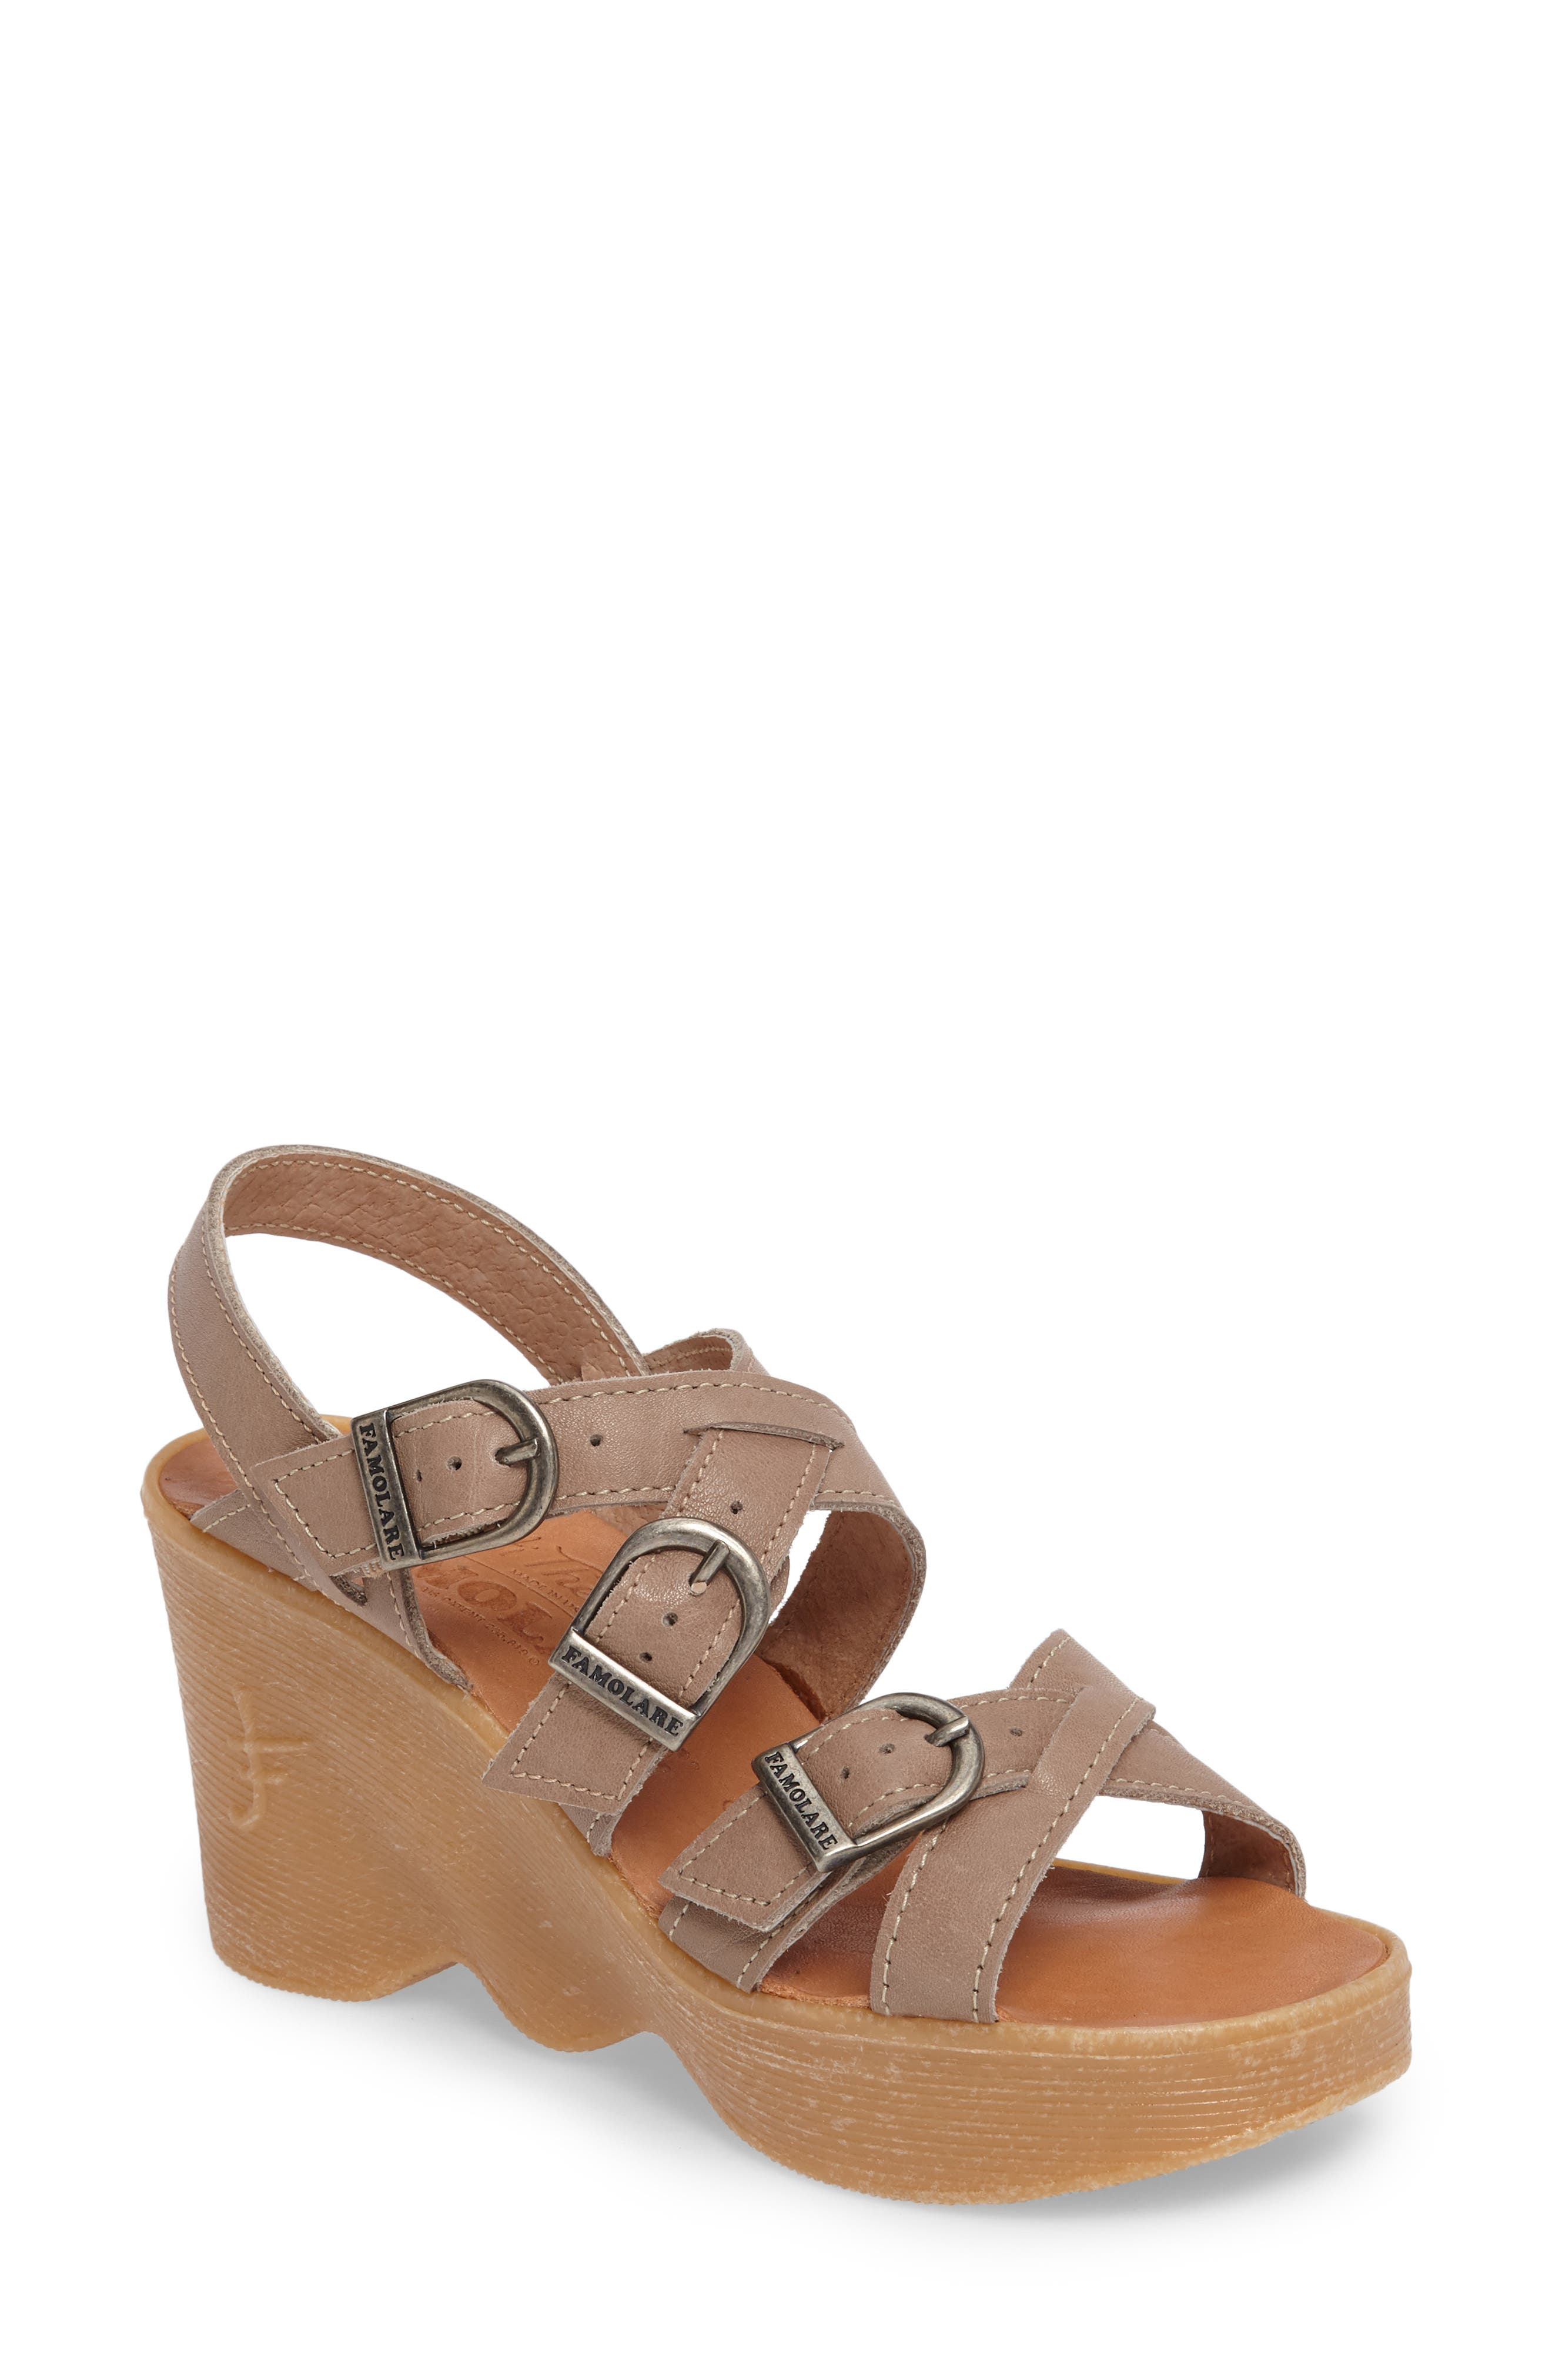 Buckle Up Wedge Sandal,                         Main,                         color, SAND LEATHER